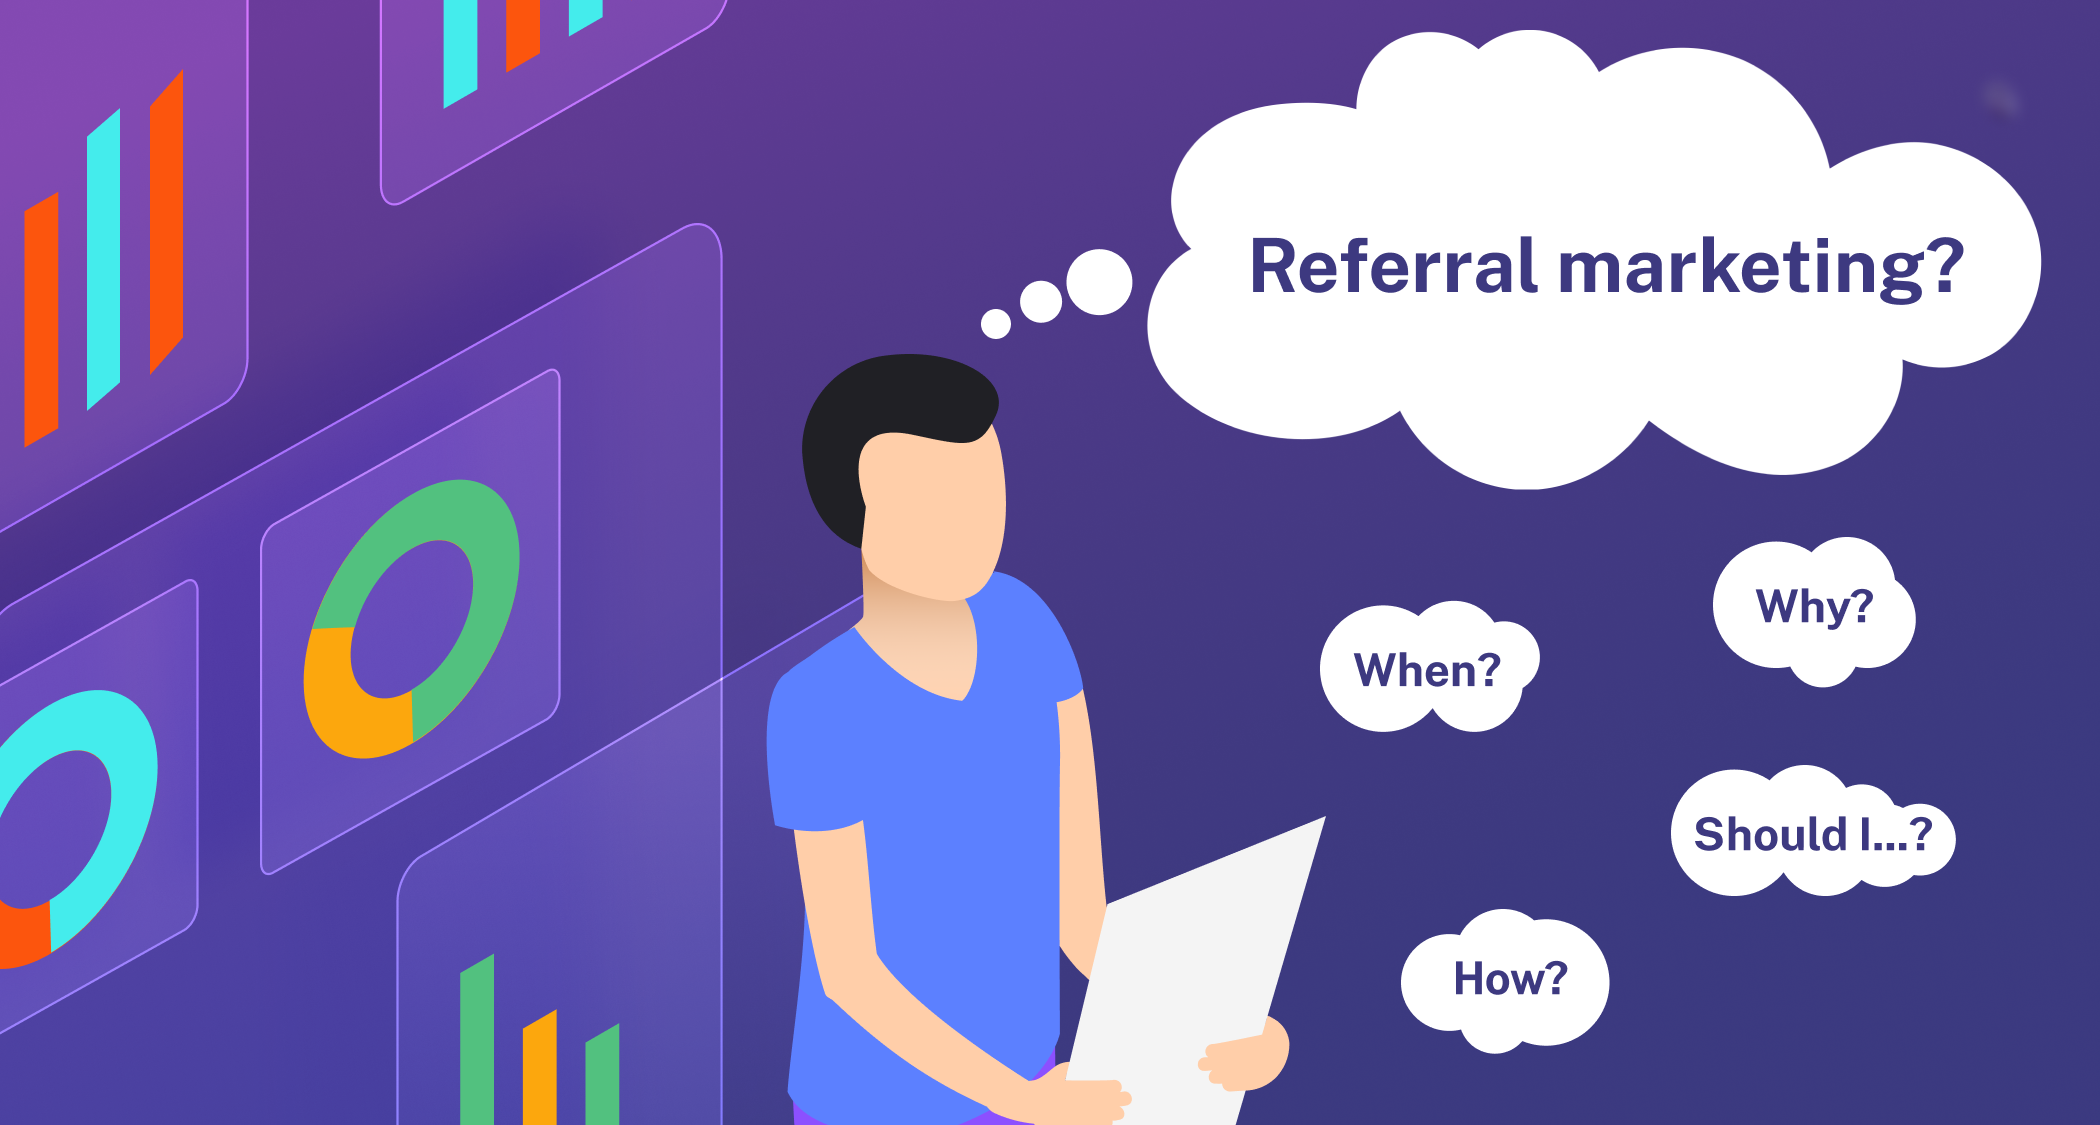 Planning your first referral marketing campaign